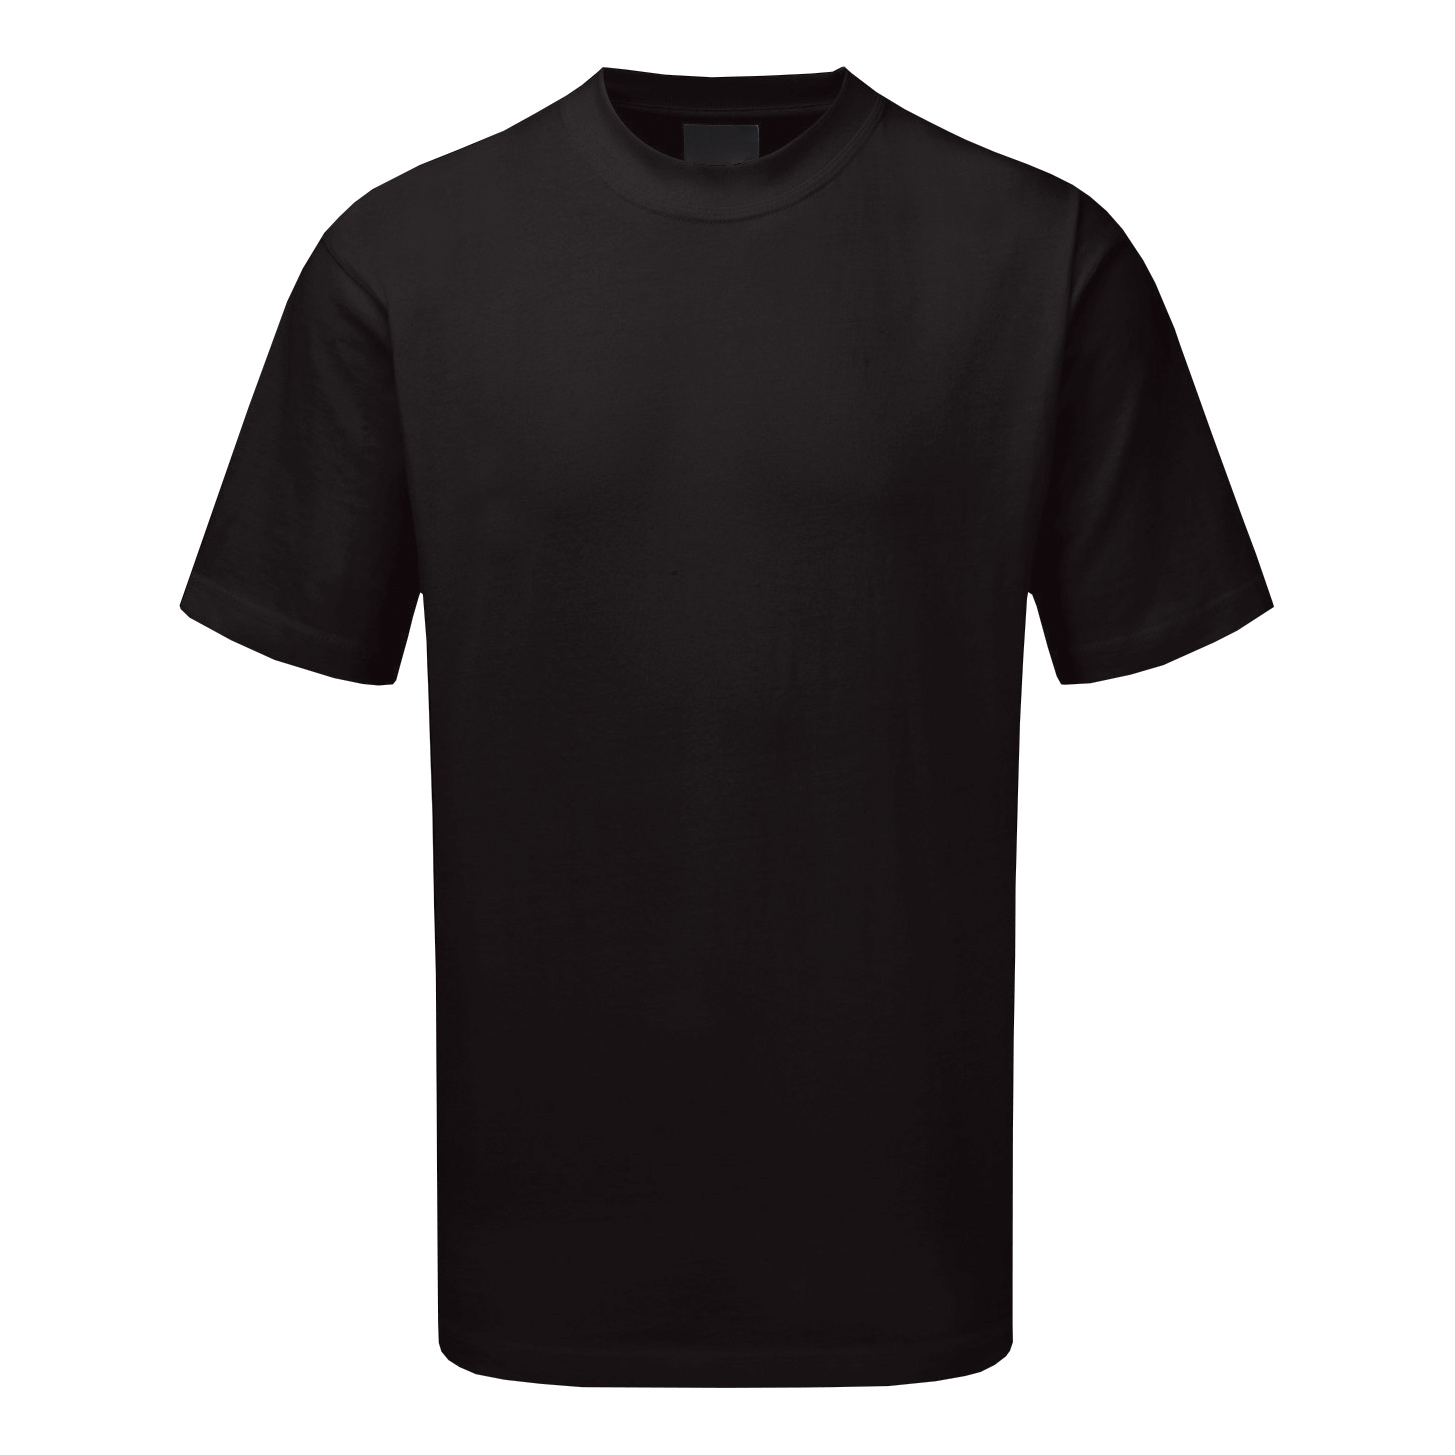 Premium T-Shirt Polycotton Triple Stitched 3XL Black Ref CLCTSHWBLXXXL *Up to 3 Day Leadtime*